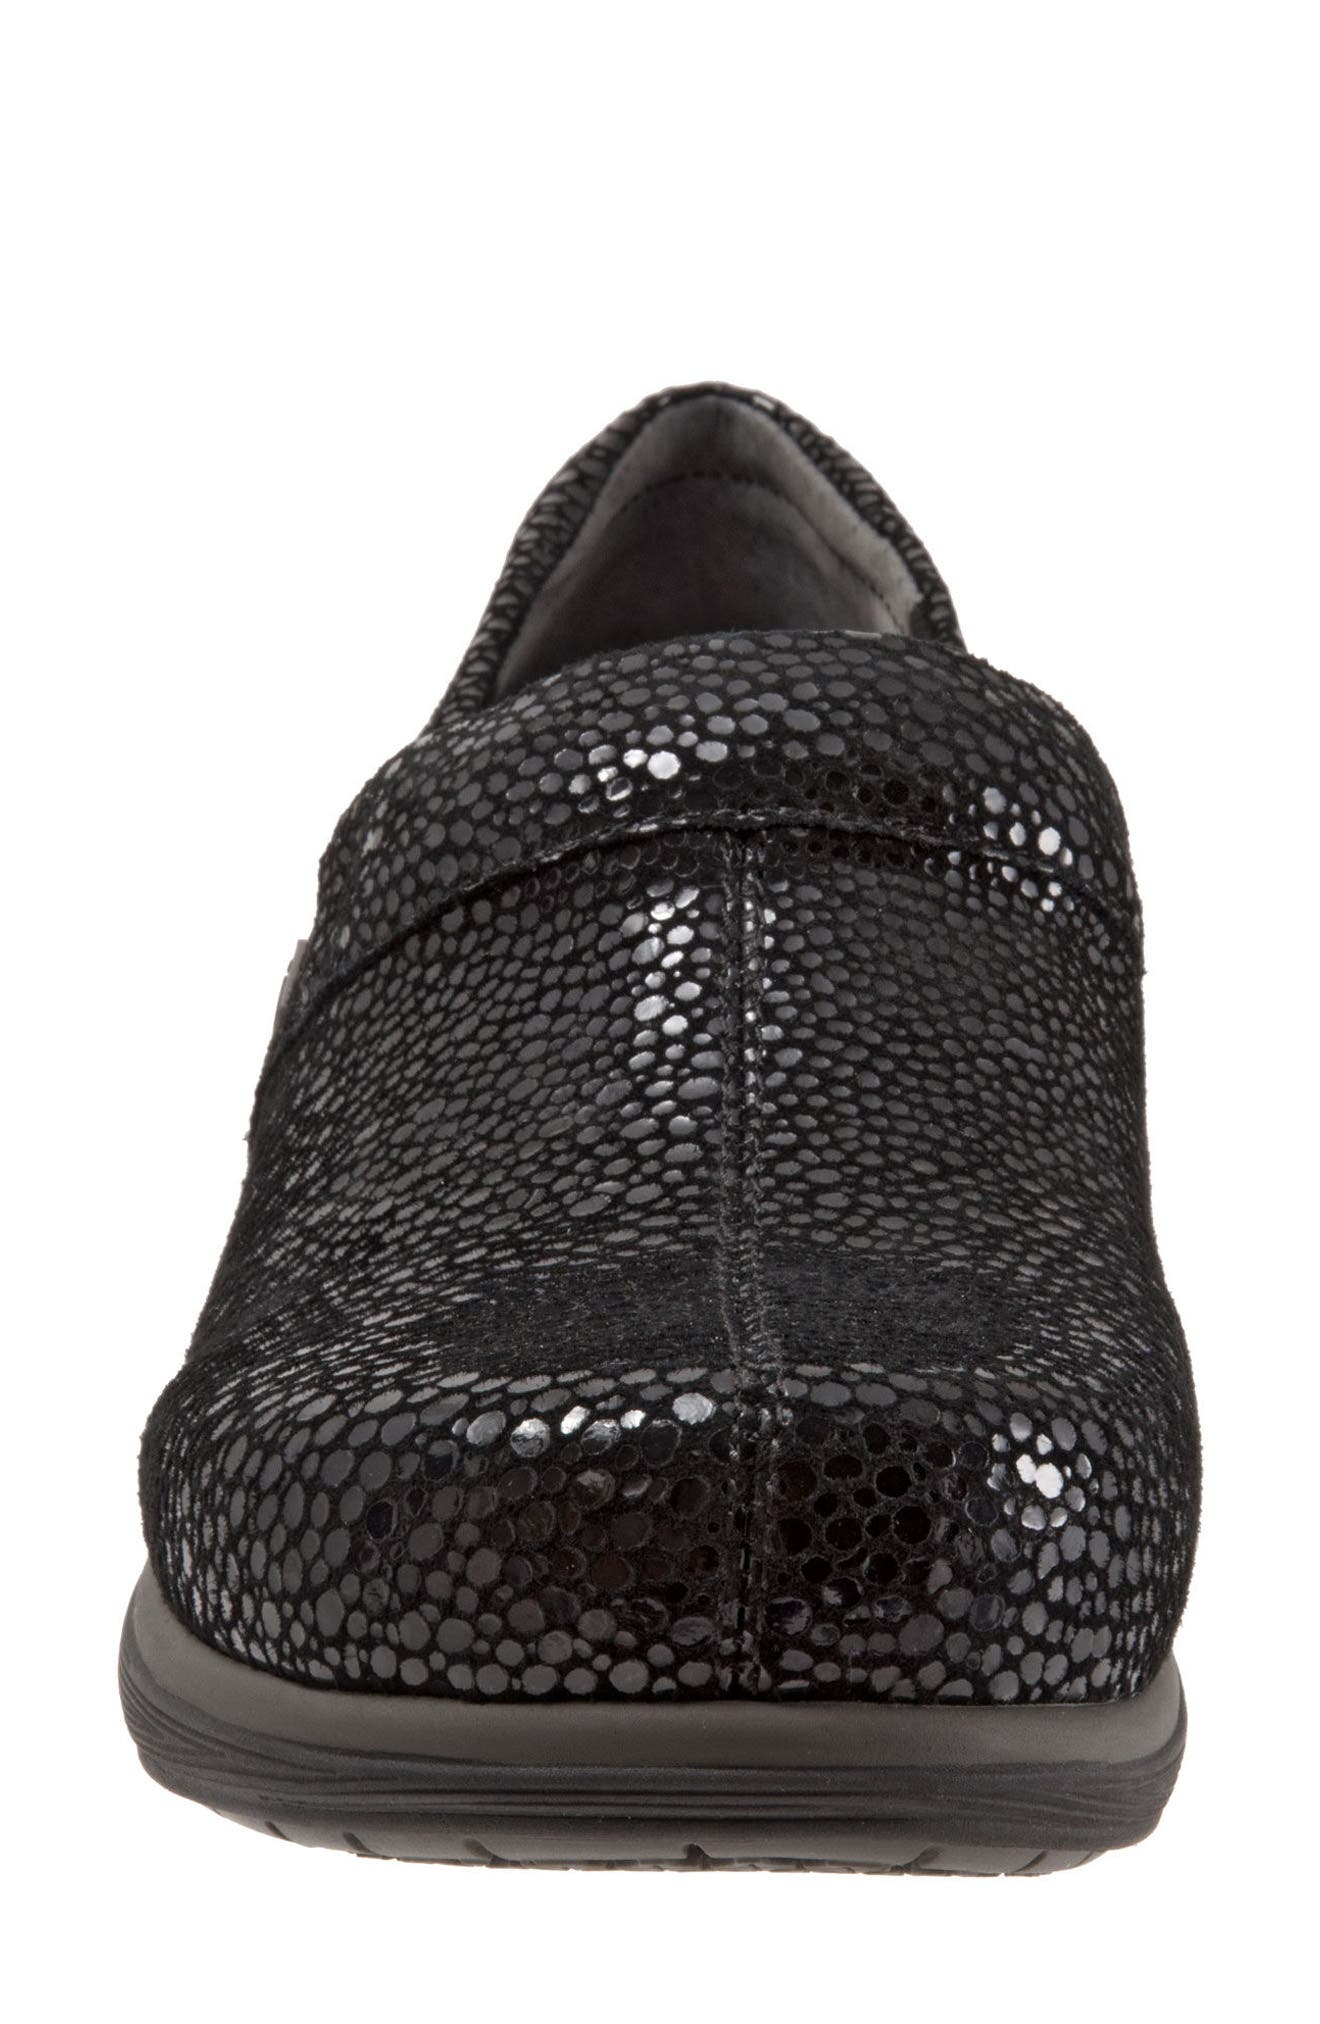 Grey's Anatomy<sup>®</sup> by Softwalk<sup>®</sup> 'Meredith' Leather Clog,                             Alternate thumbnail 4, color,                             004